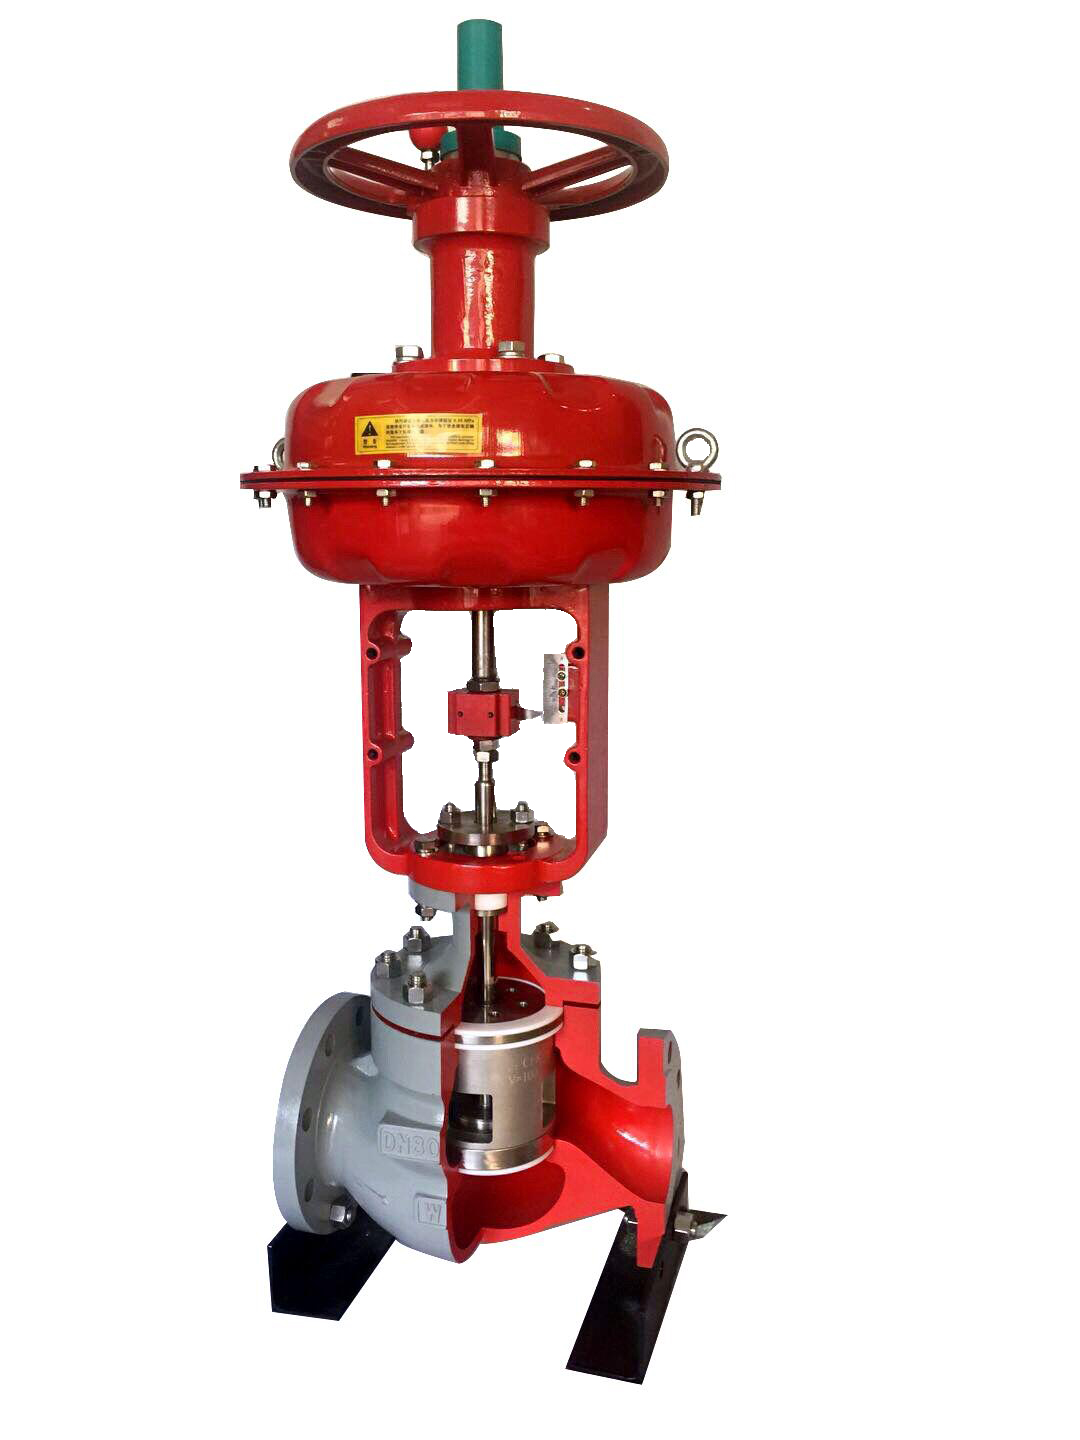 HTS Pneumatic Top-Guided Single-Seated Control Valve